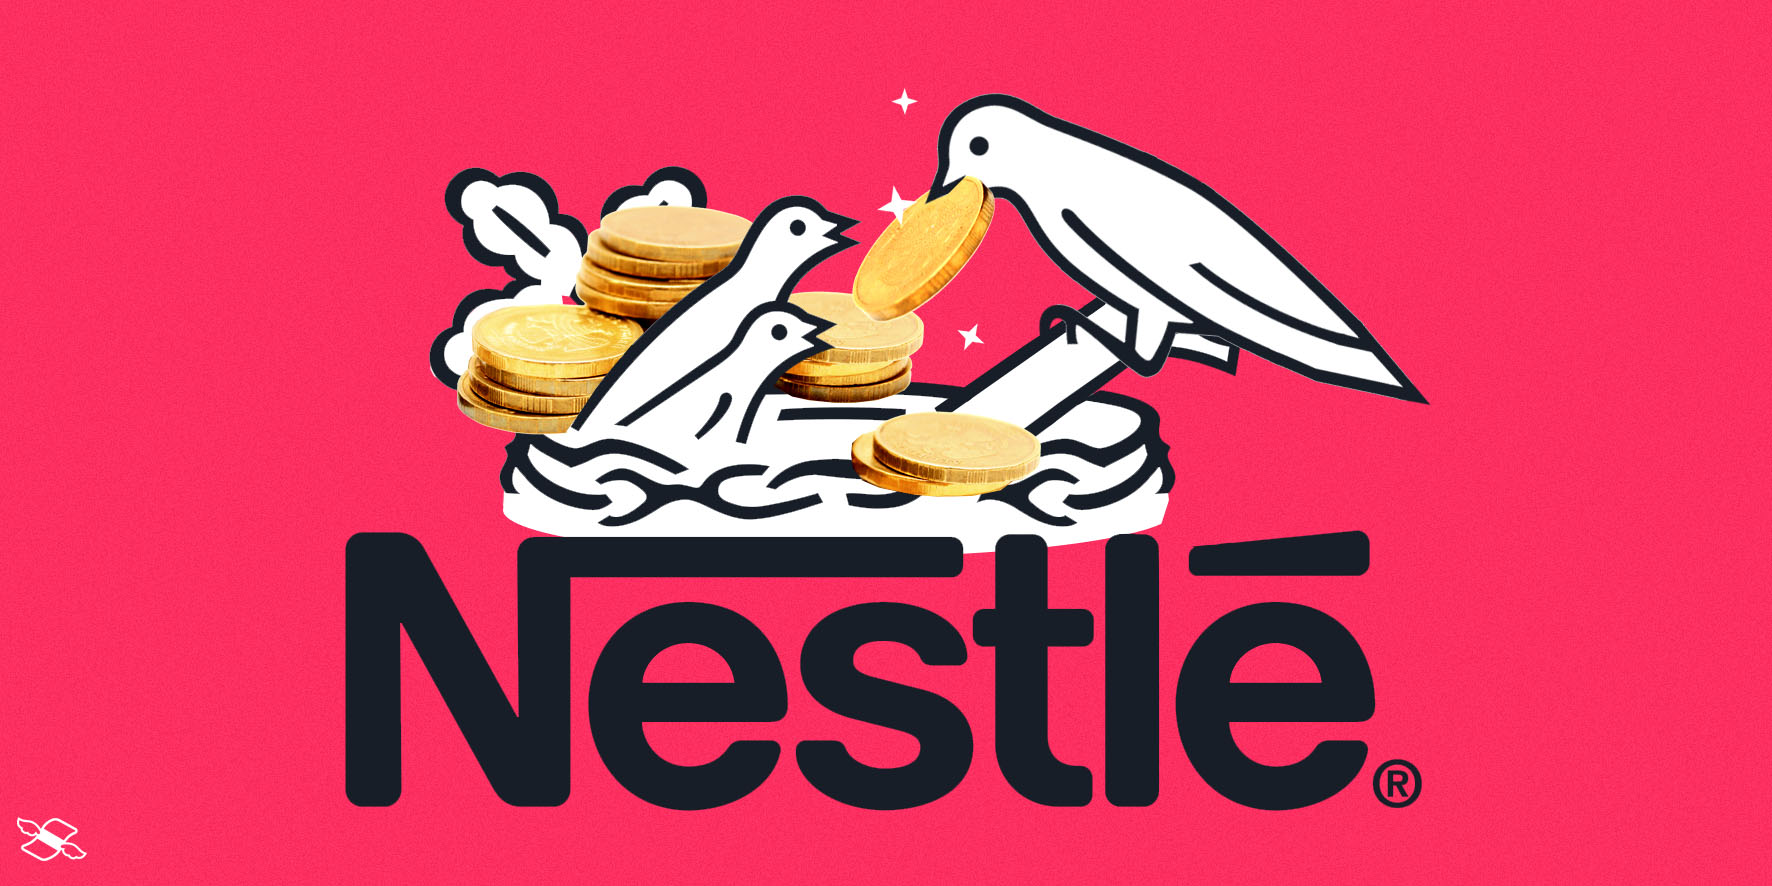 Nestlé reported strong results